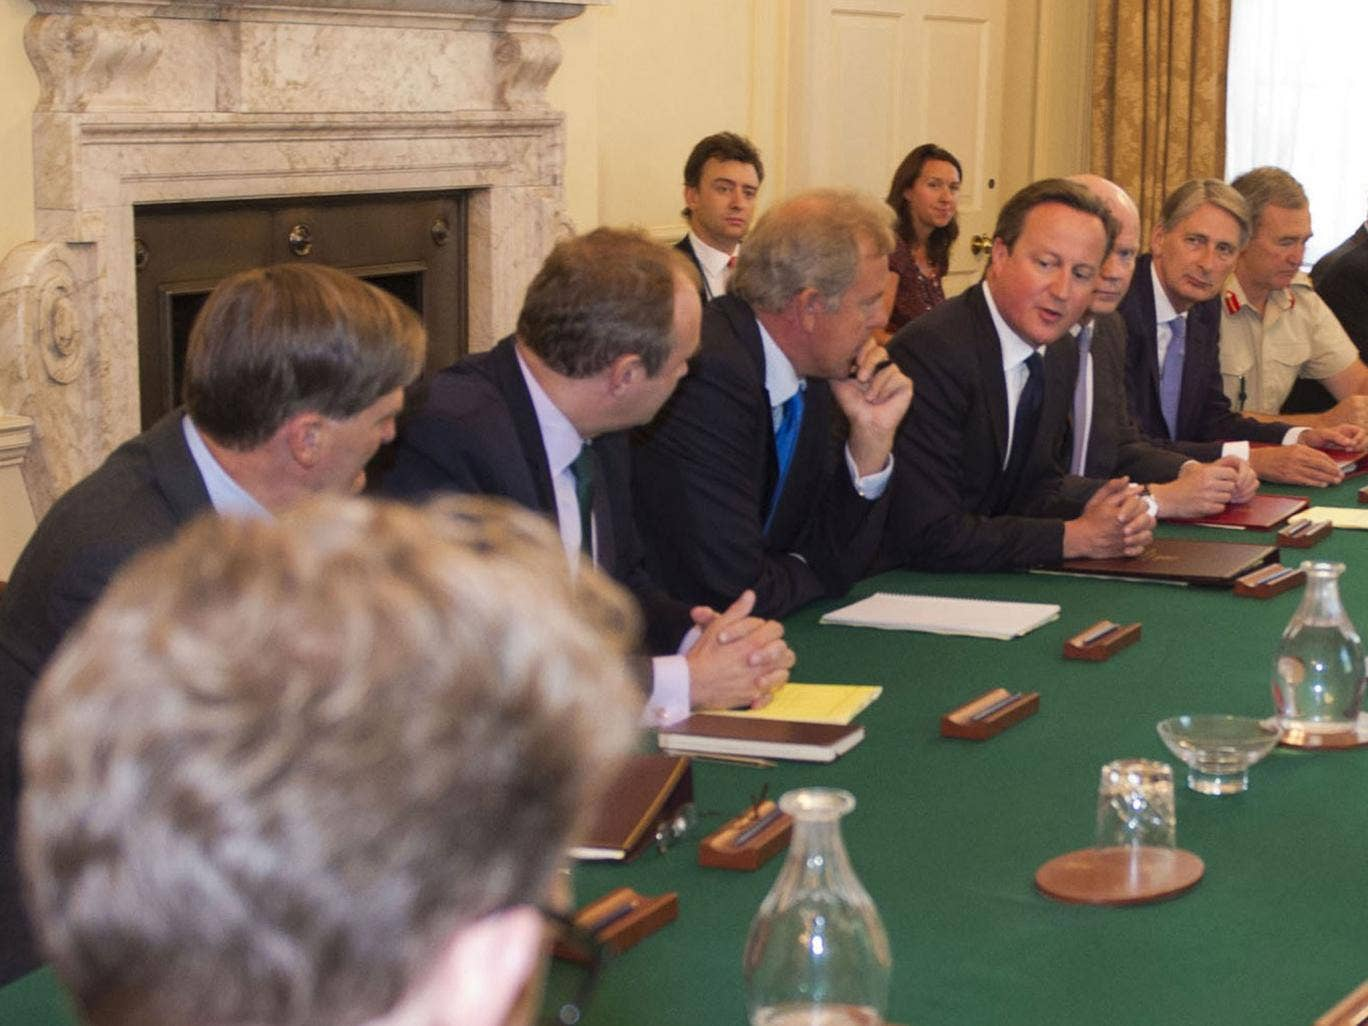 David Cameron chairs a meeting of the National Security Council at 10 Downing Street in central London to discuss a response to the situation in Syria